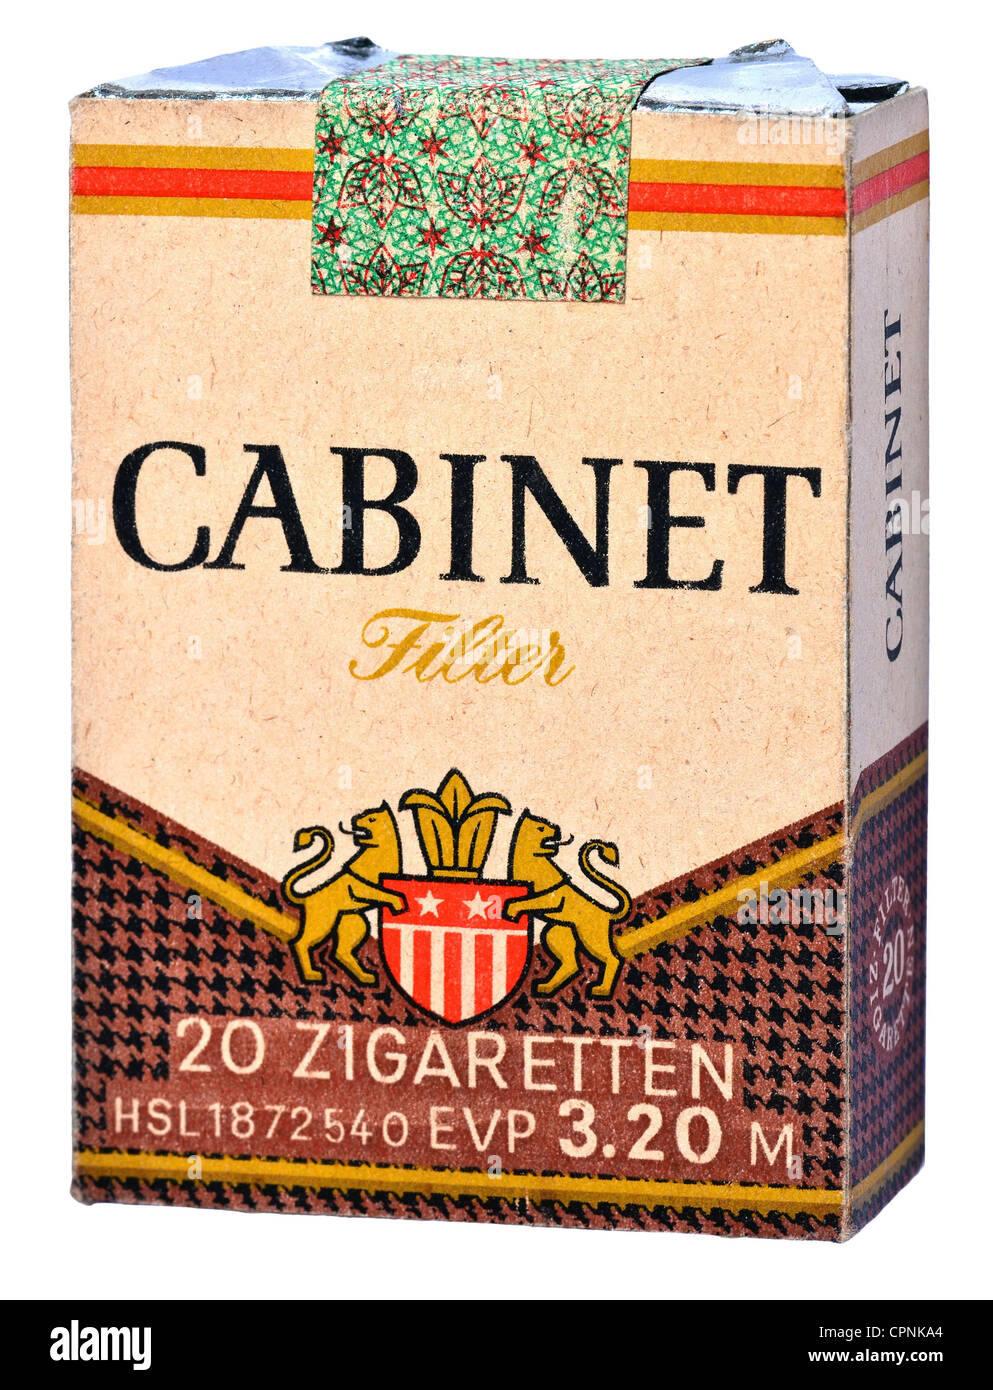 tobacco, cigarette packet, Cabinet Filter, East-Germany cigarette, Cabinet, made by: VEB Tabak Nordhausen und Vereinigte - Stock Image